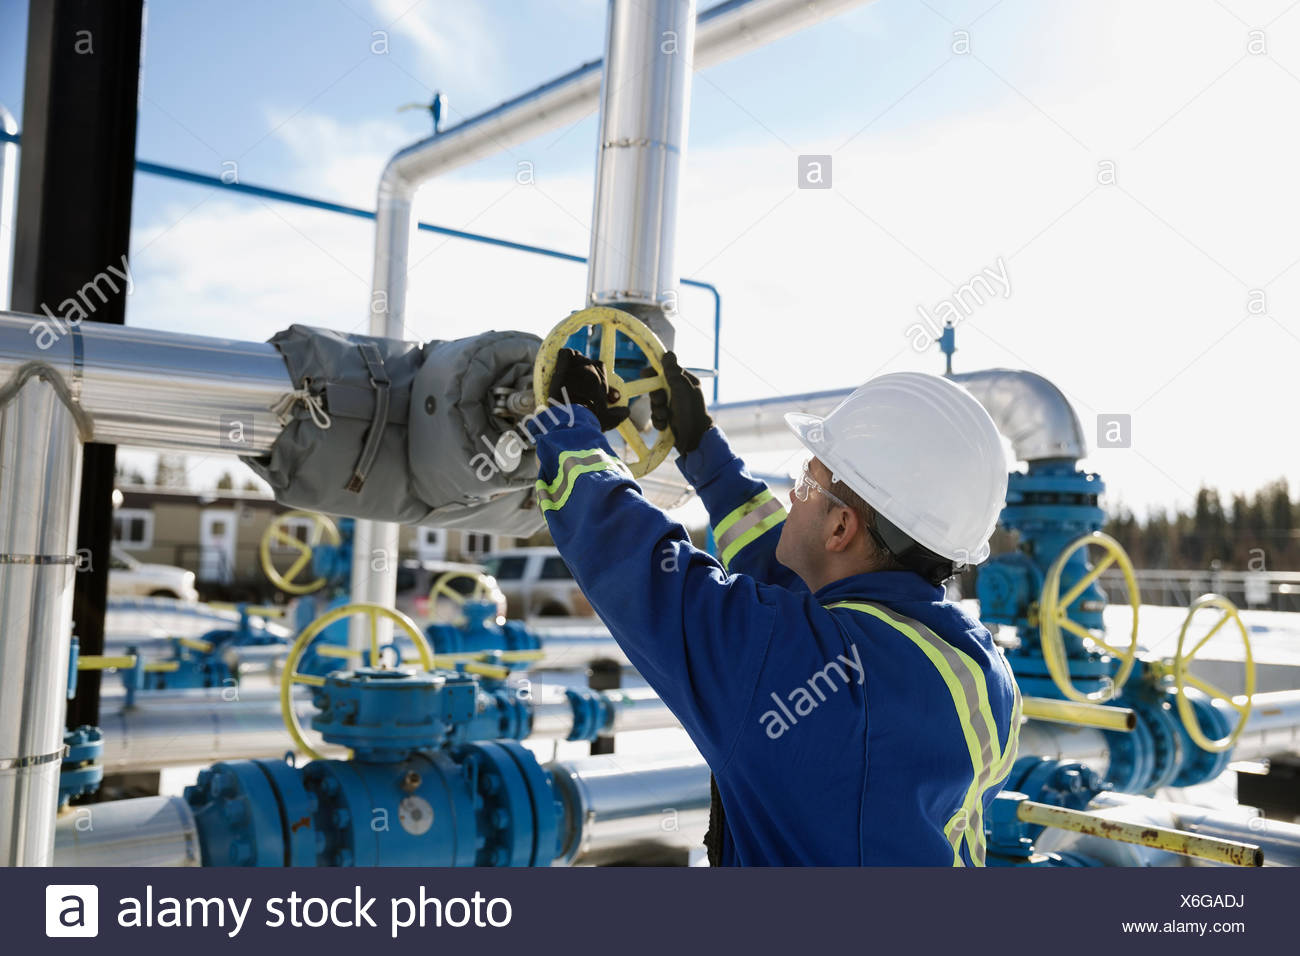 Male worker turning valve on gas plant pipeline - Stock Image